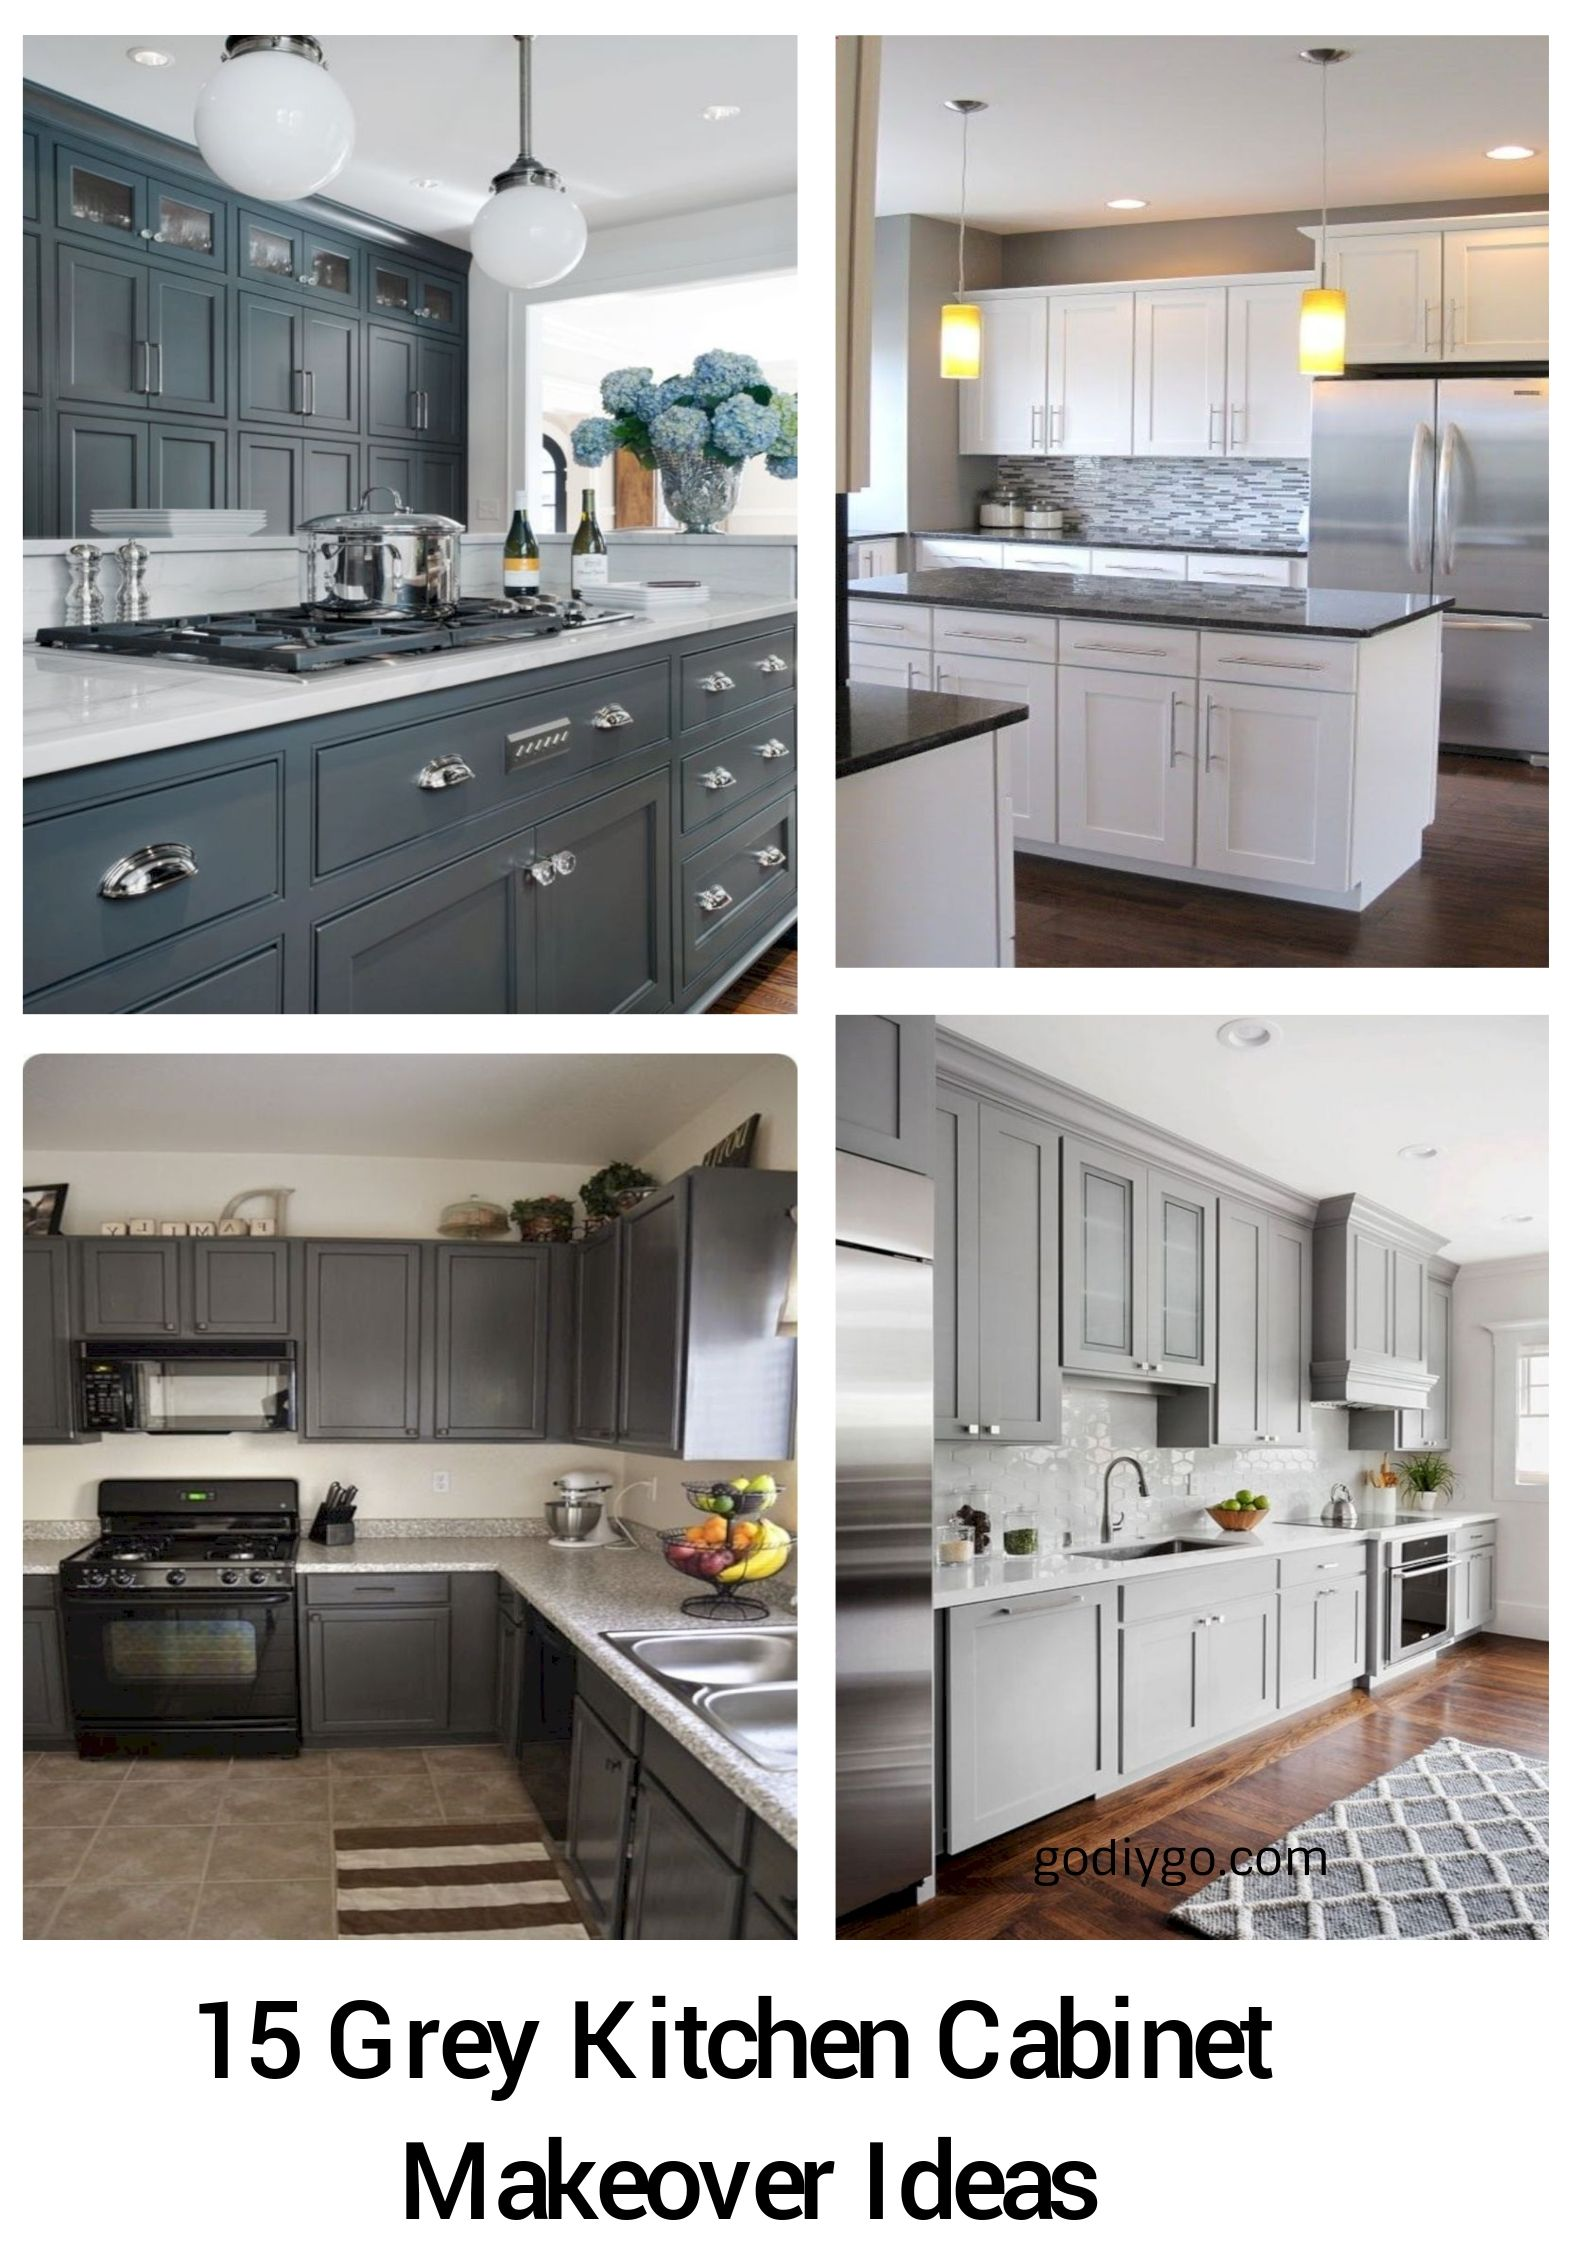 15 Grey Kitchen Cabinet Makeover Ideas | For the Home | Grey ...